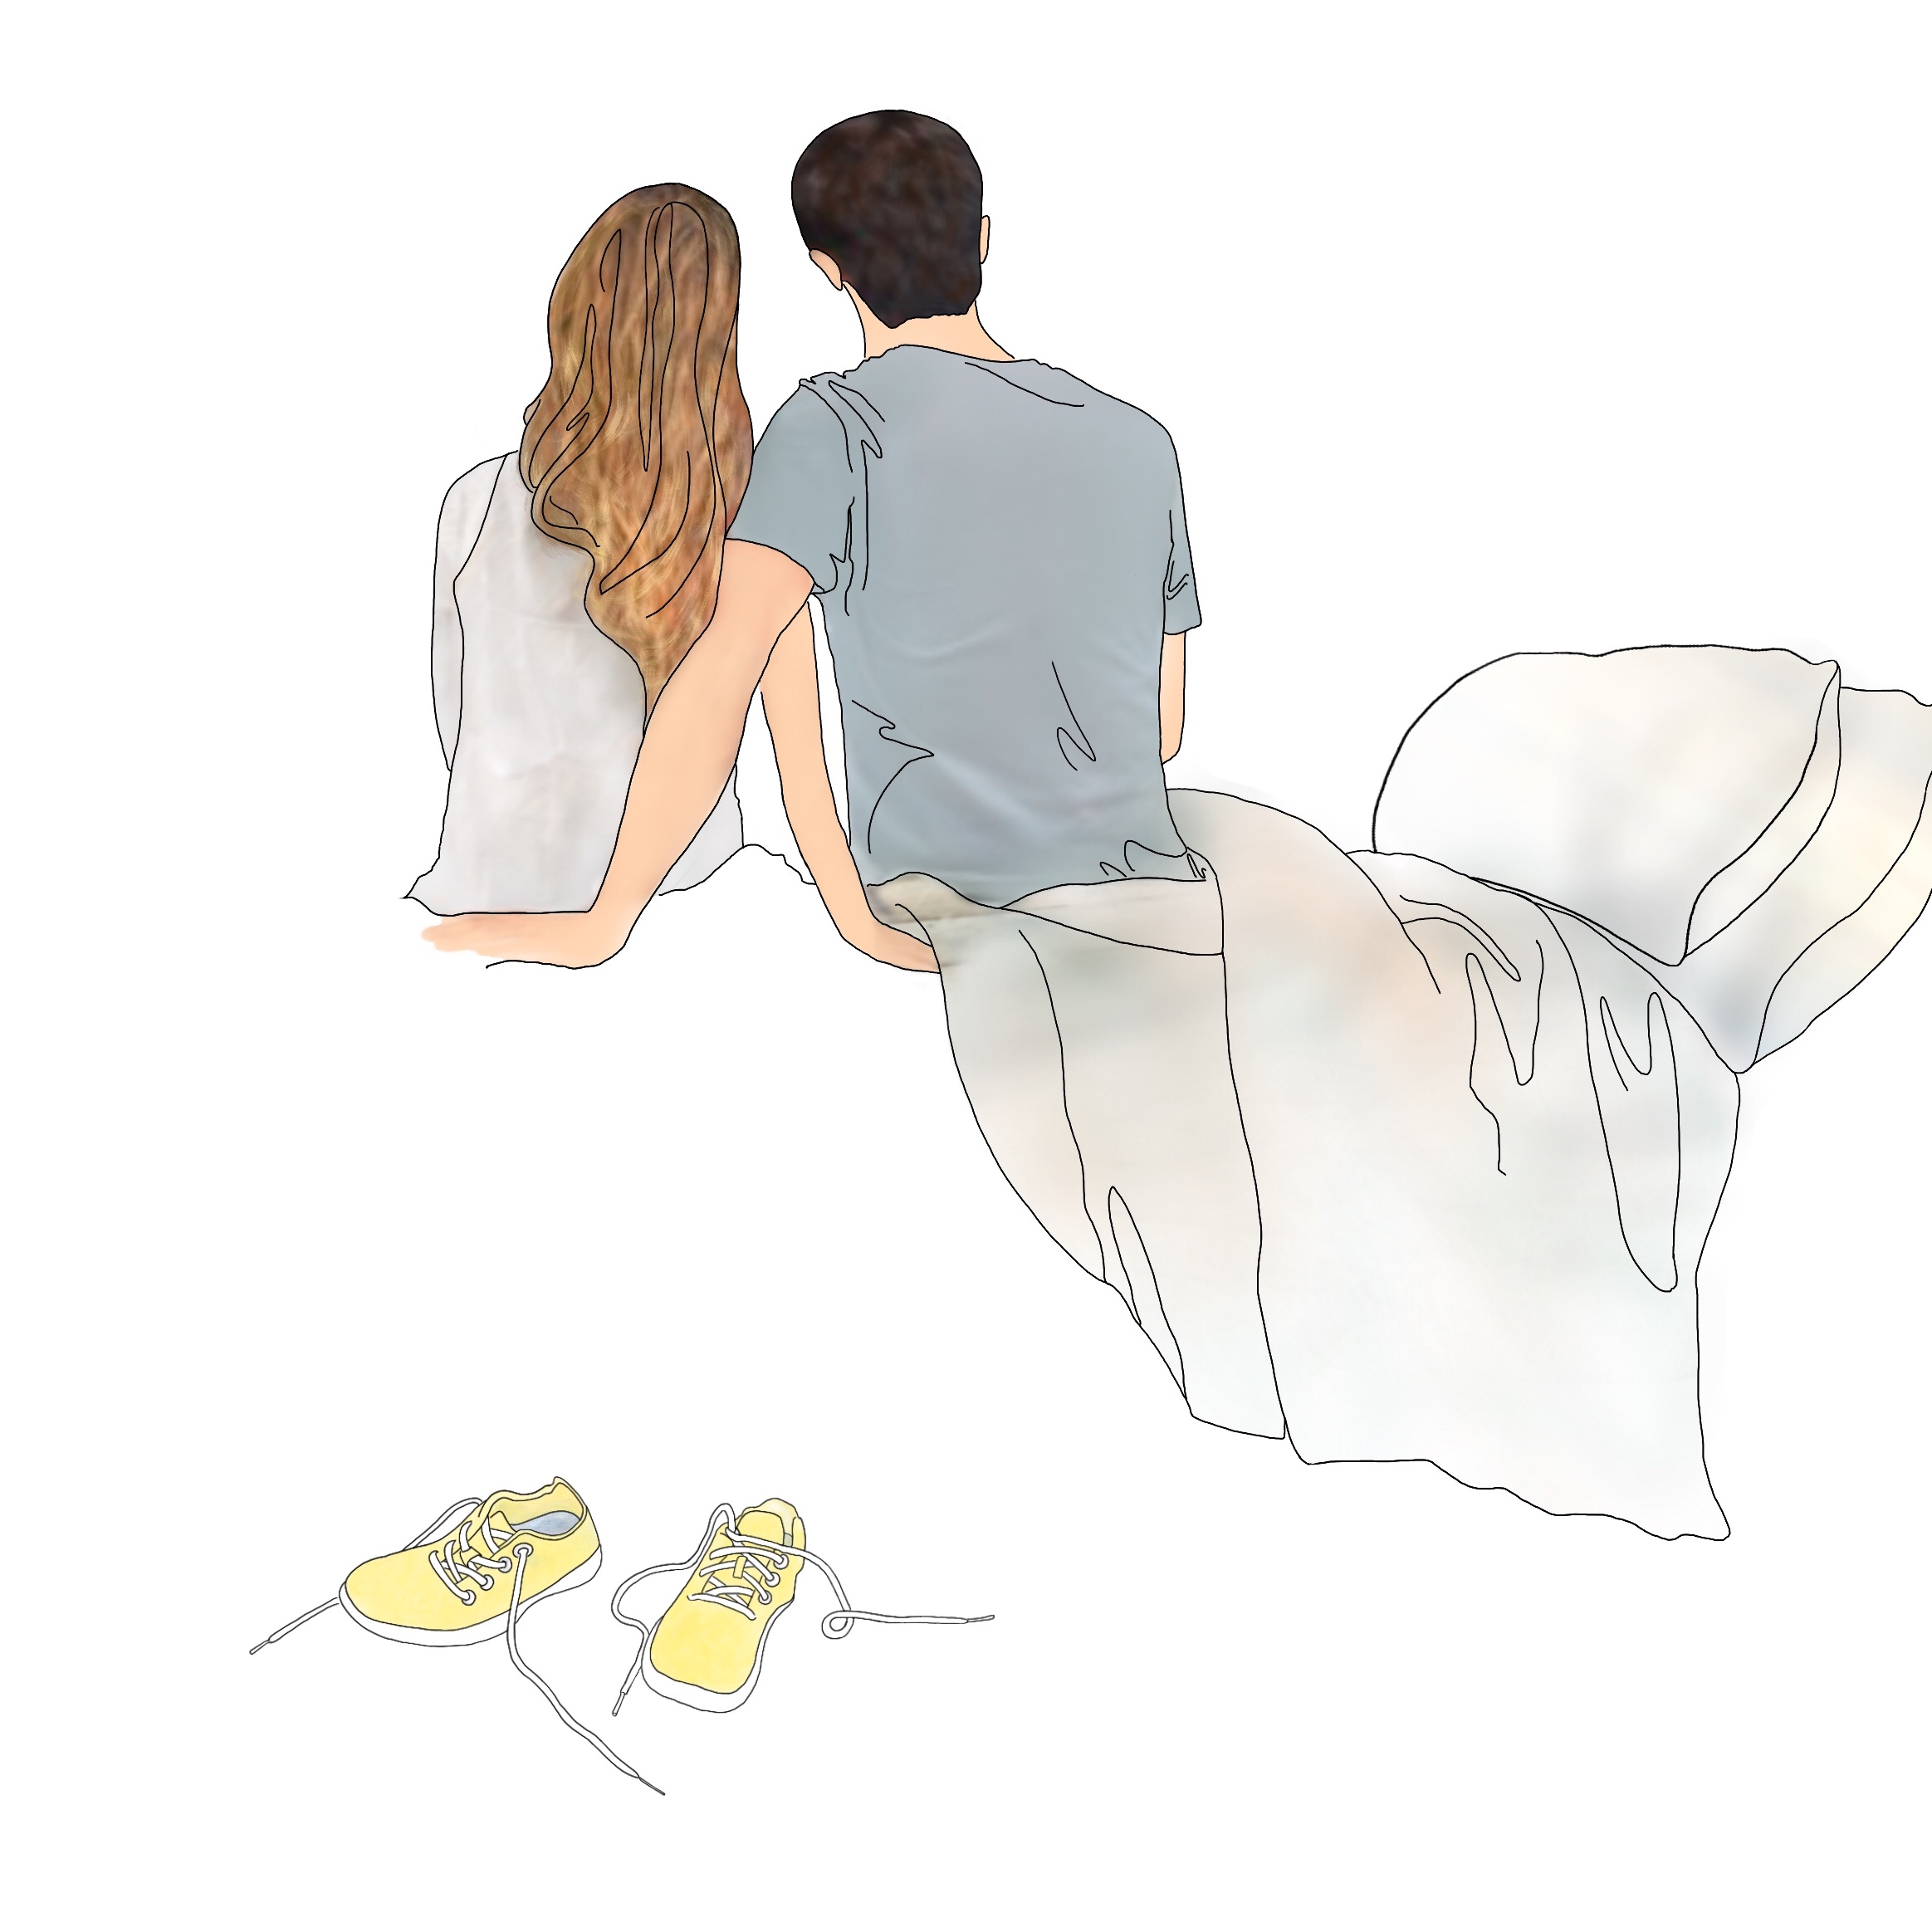 A drawing of a couple at home sitting on a bed